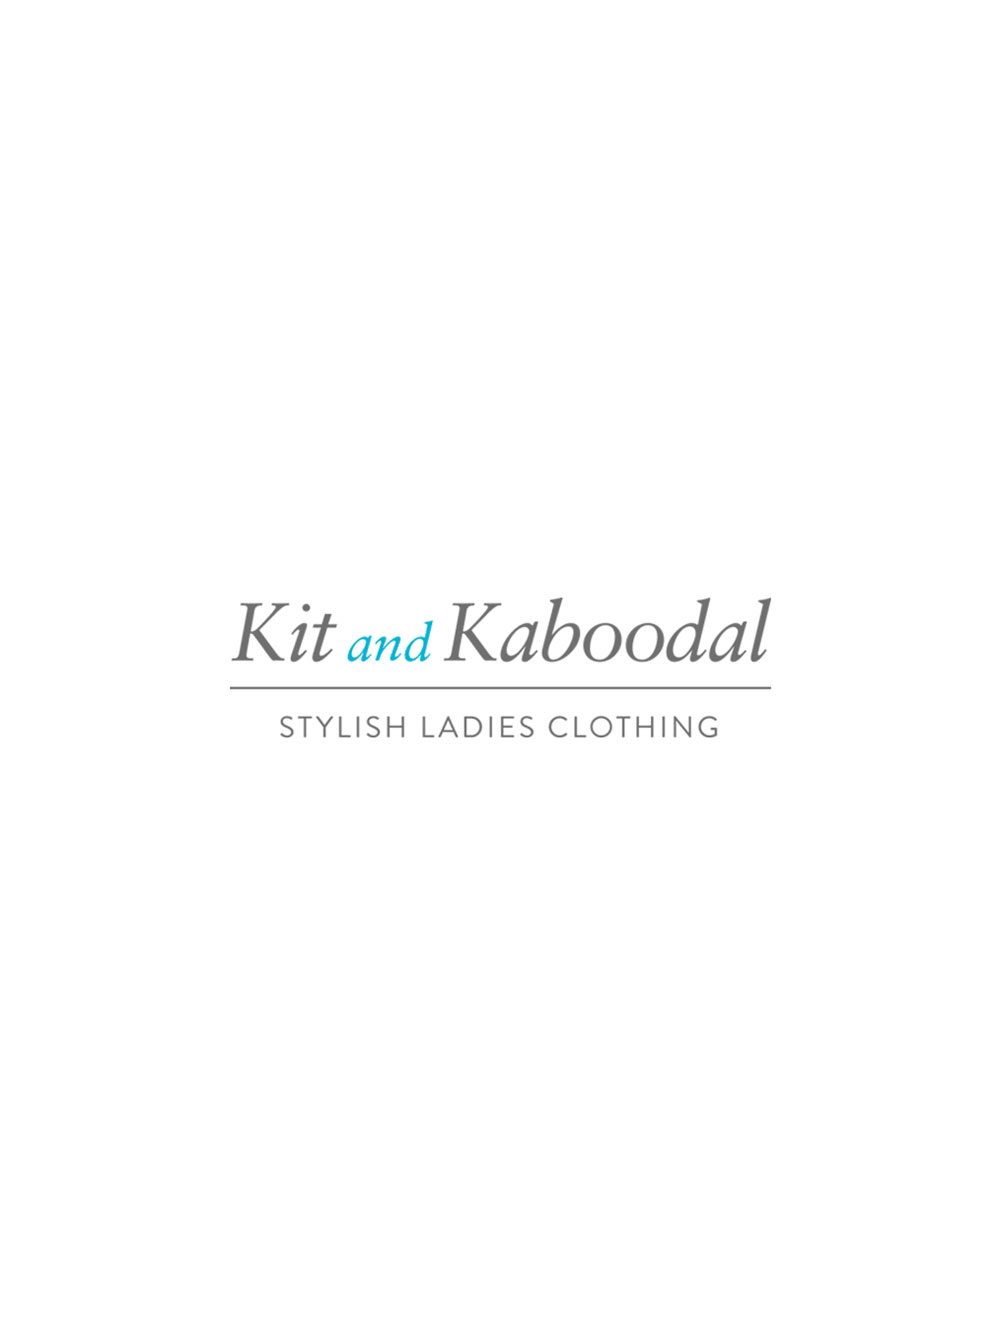 Kit and Kaboodal Mint Necklace Silver and Rose Gold